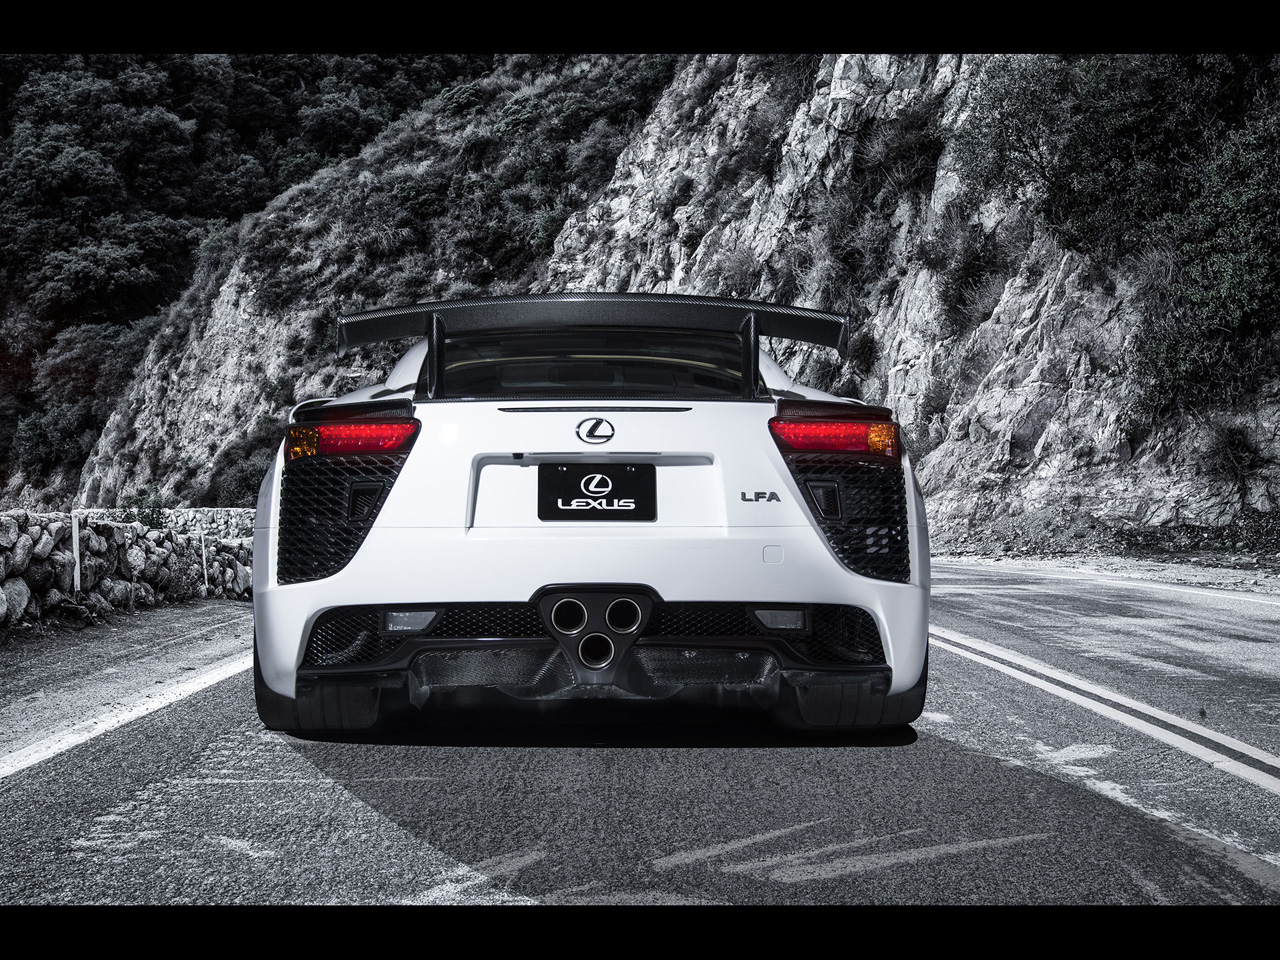 2013-Lexus-LFA-Nurburgring-Edition-Luxury-Auto (5)